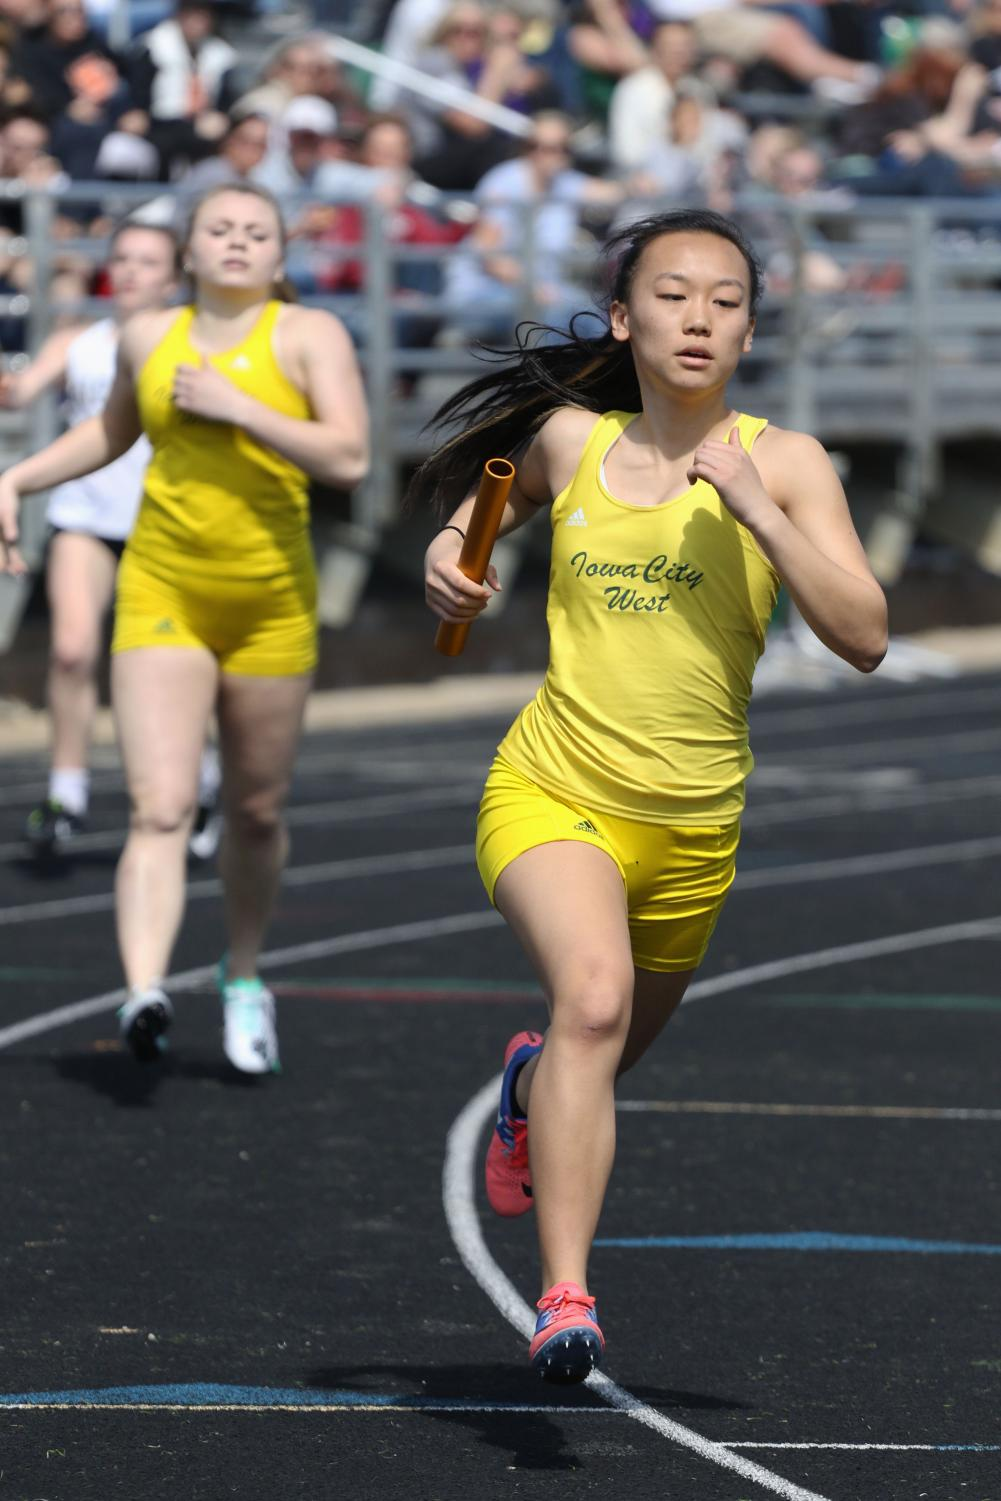 Amy+Liao+%2721+runs+the+second+leg+of+the+4x400+meter+run+after+Katie+Severt+%2719+passed+the+baton+off+to+her+on+Saturday%2C+April+6.+The+relay+team+placed+first+in+a+time+of+4%3A14.70.+Liao+also+ran+in+the+first+place+4x100+shuttle+hurdle+relay+team+and+4x100+meter+relay+team.+She+also+placed+sixth+in+the+100+meter+hurdles+in+a+time+of+17.16.